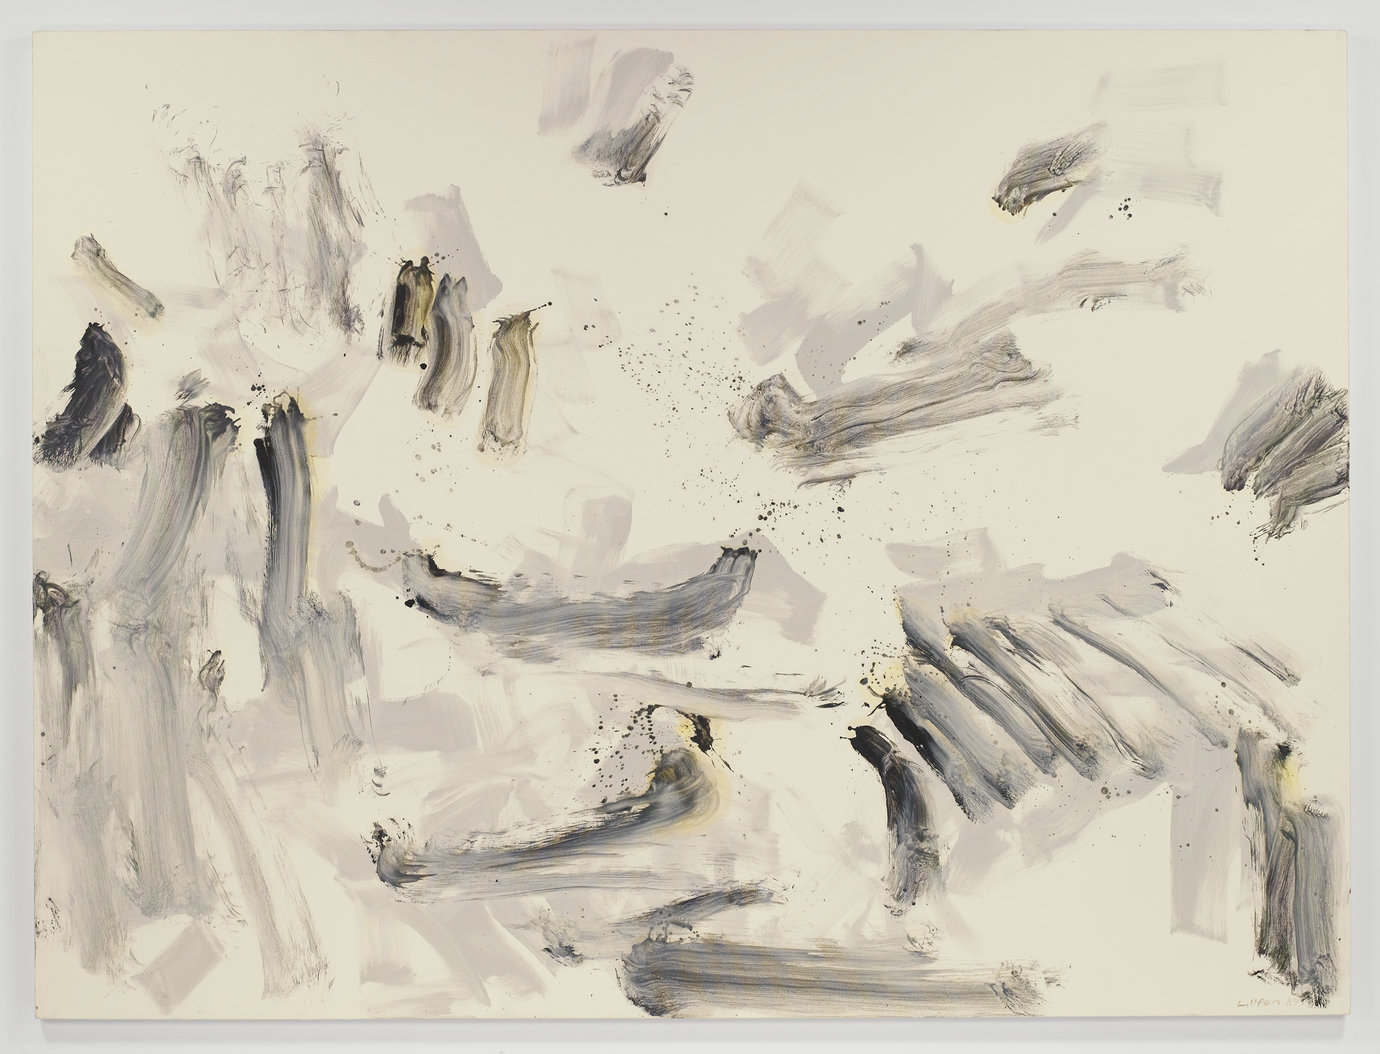 ", 1989. Oil on canvas, 7&apos; 1-7/8"" x 9&apos; 6-1/2"" (218.2 cm x 290.9 cm)."